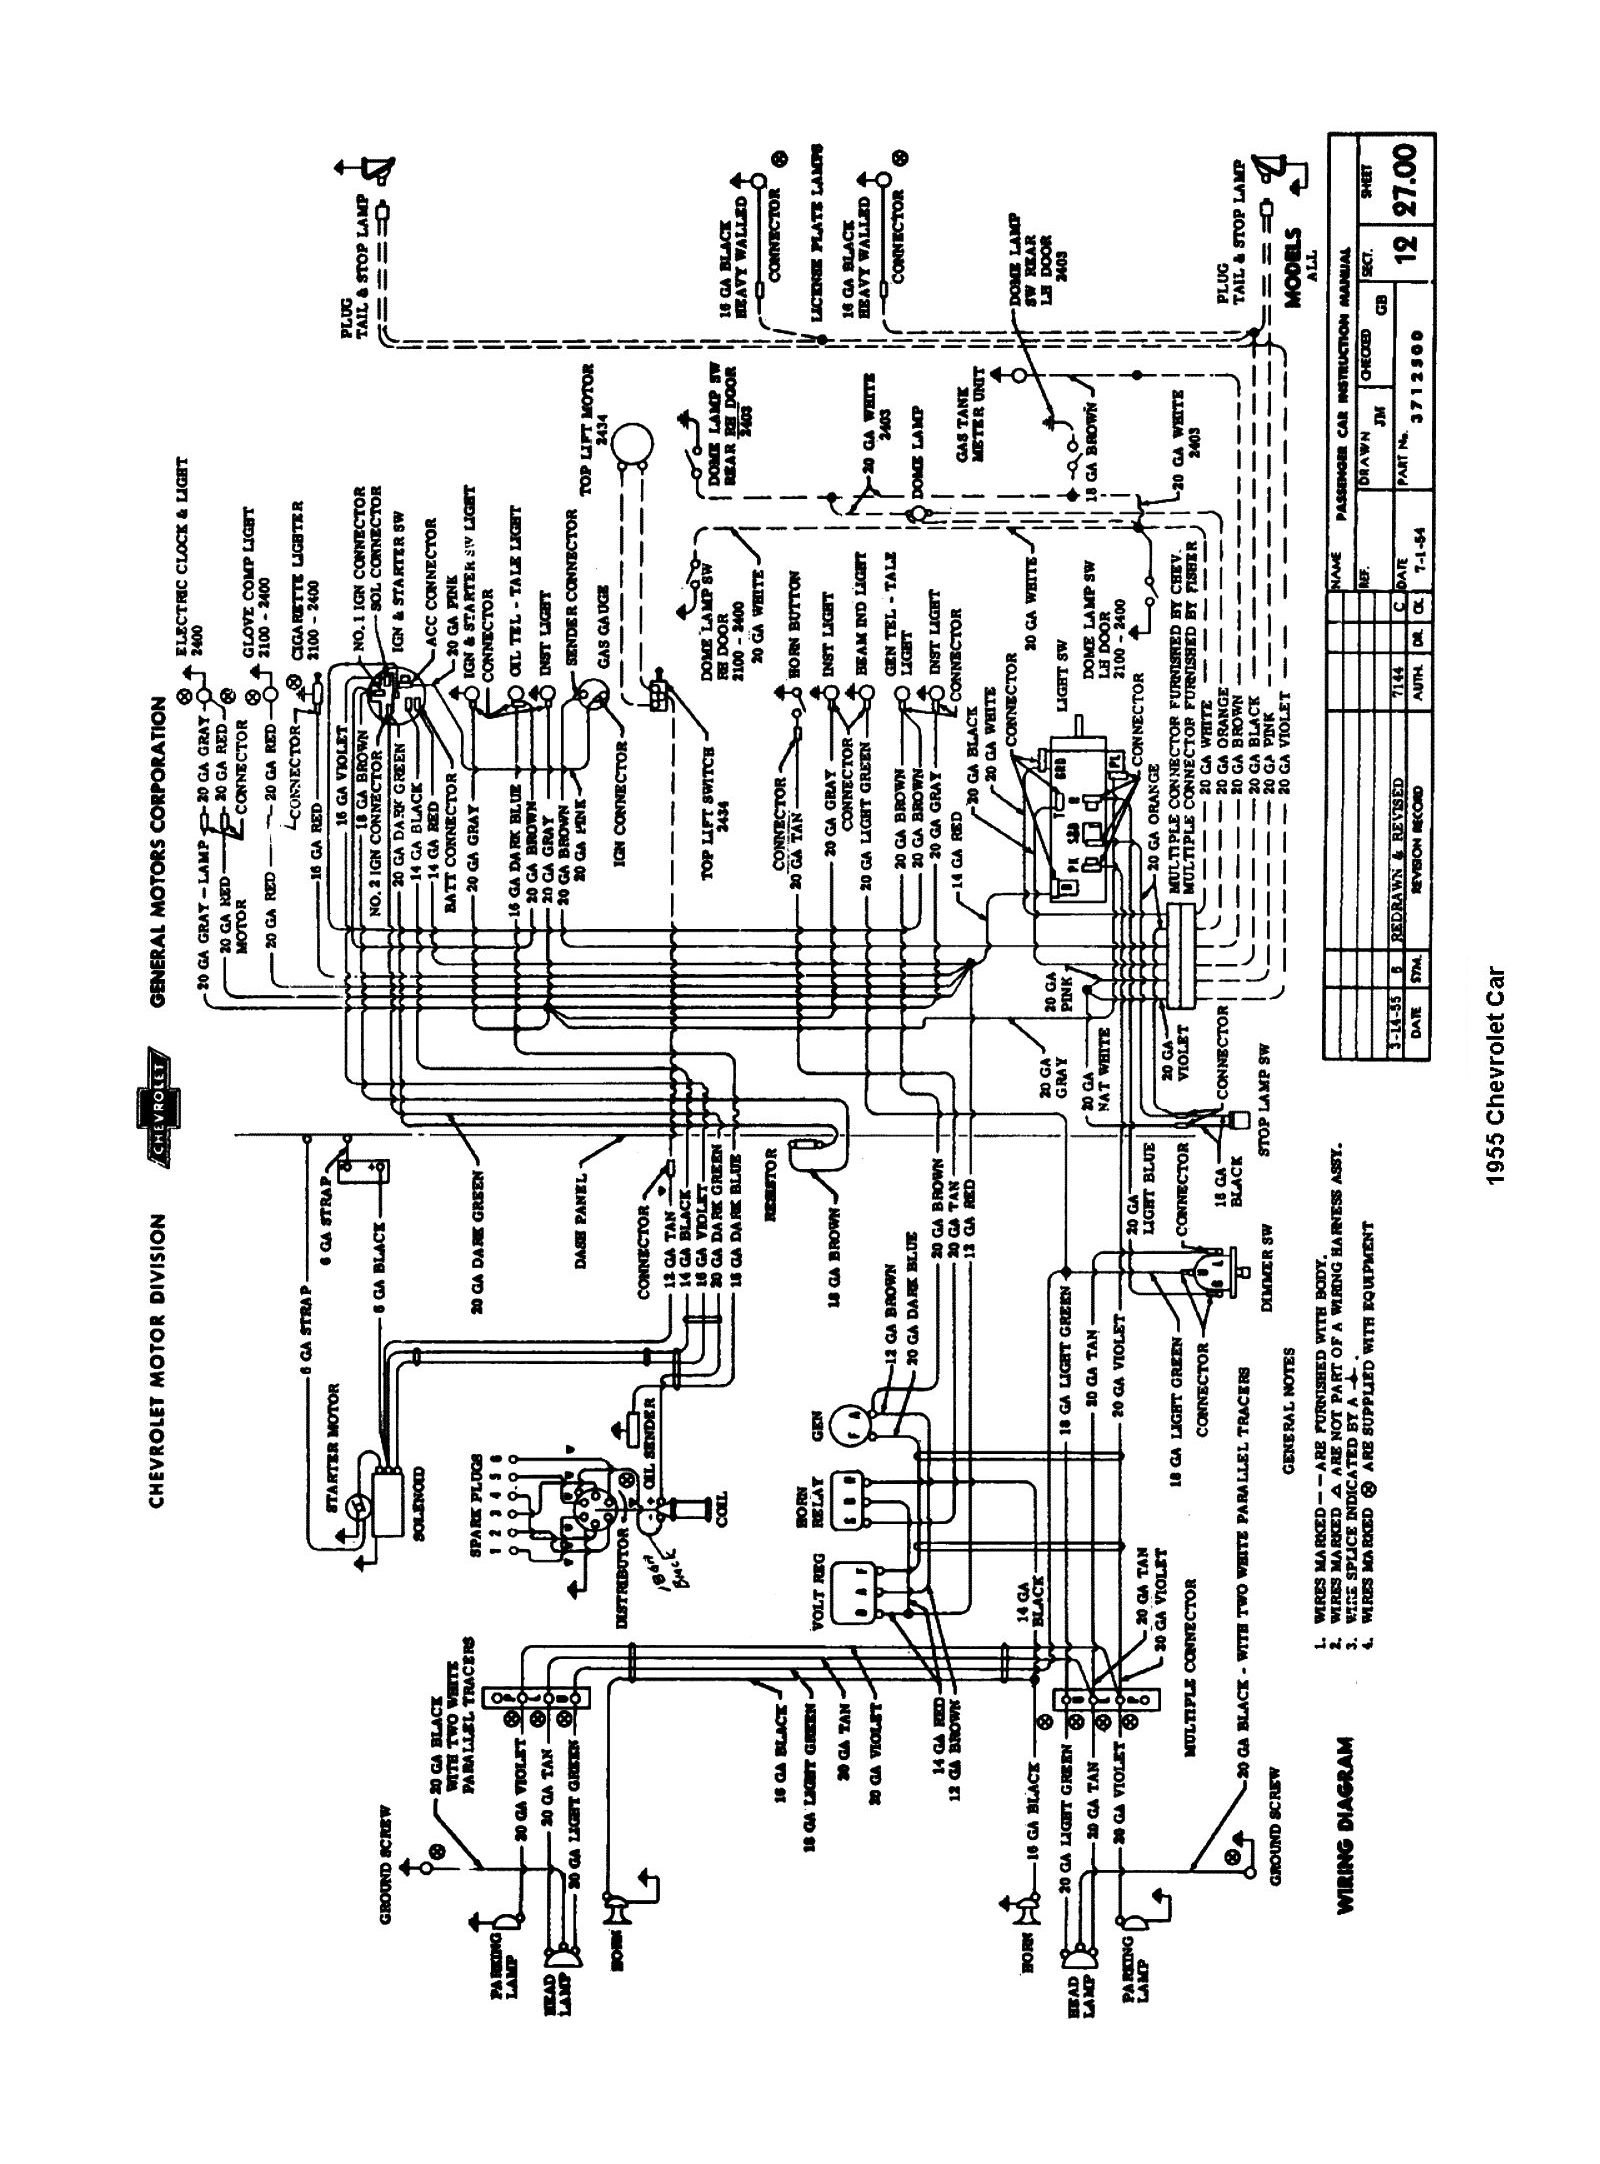 1950s Light Switch Wiring Diagram - Trusted Wiring Diagram •